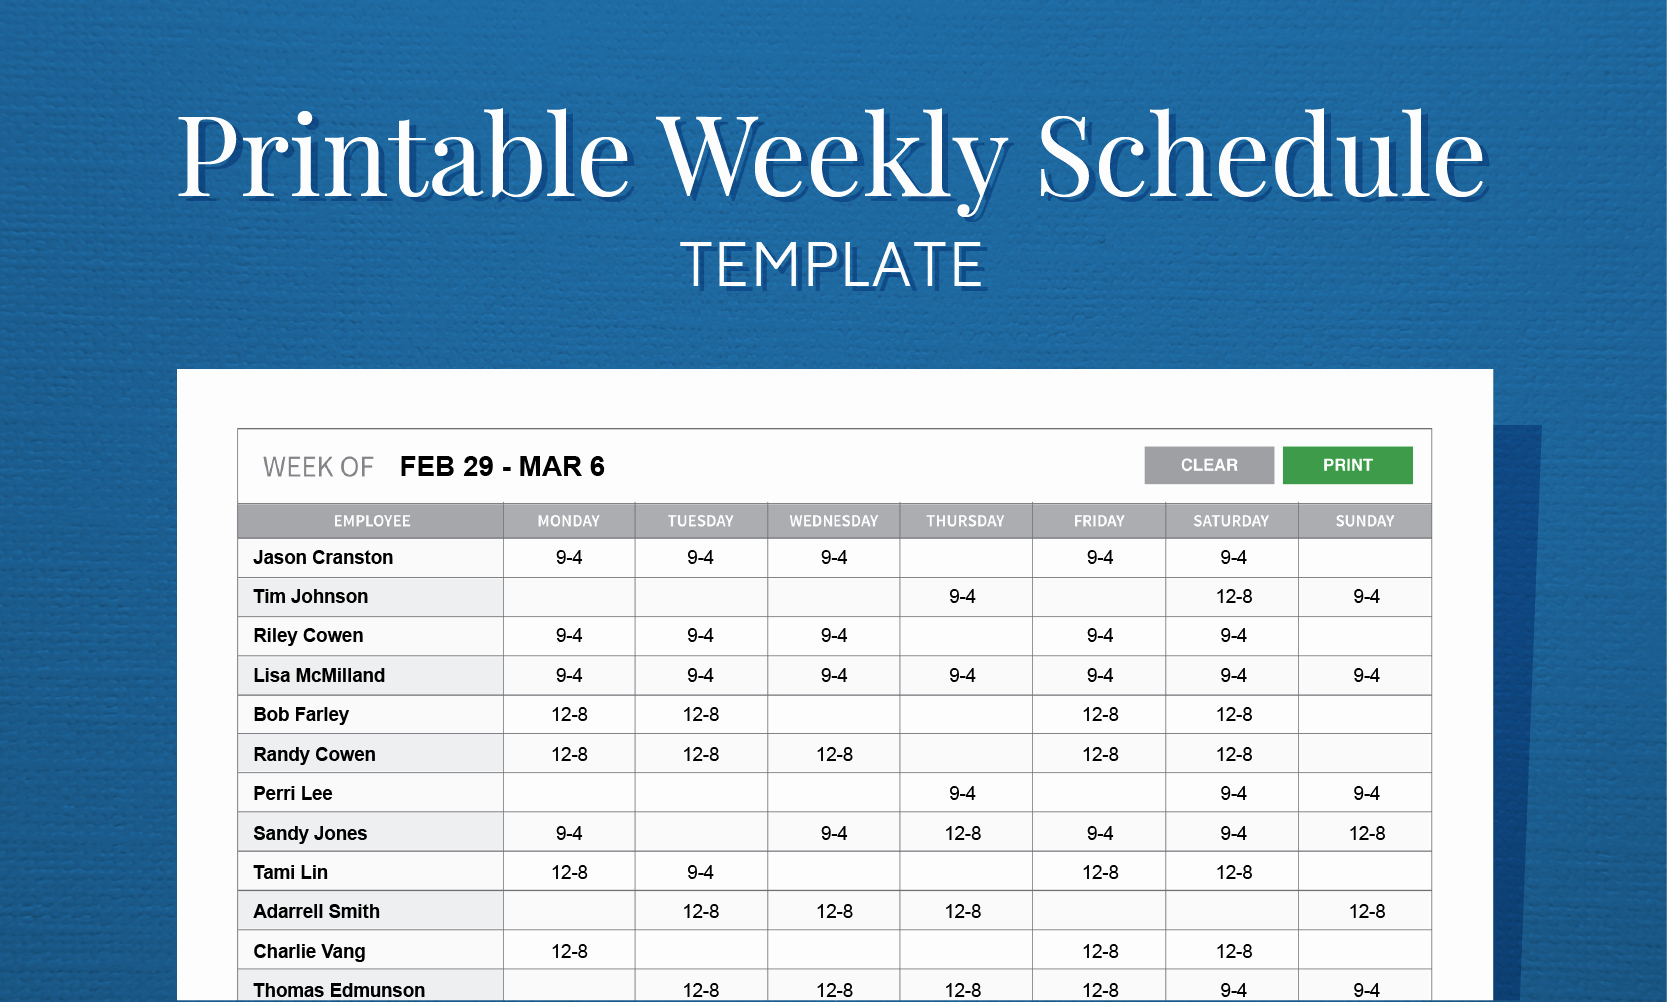 Weekly Work Schedule Template Word Lovely Free Printable Weekly Work Schedule Template for Employee